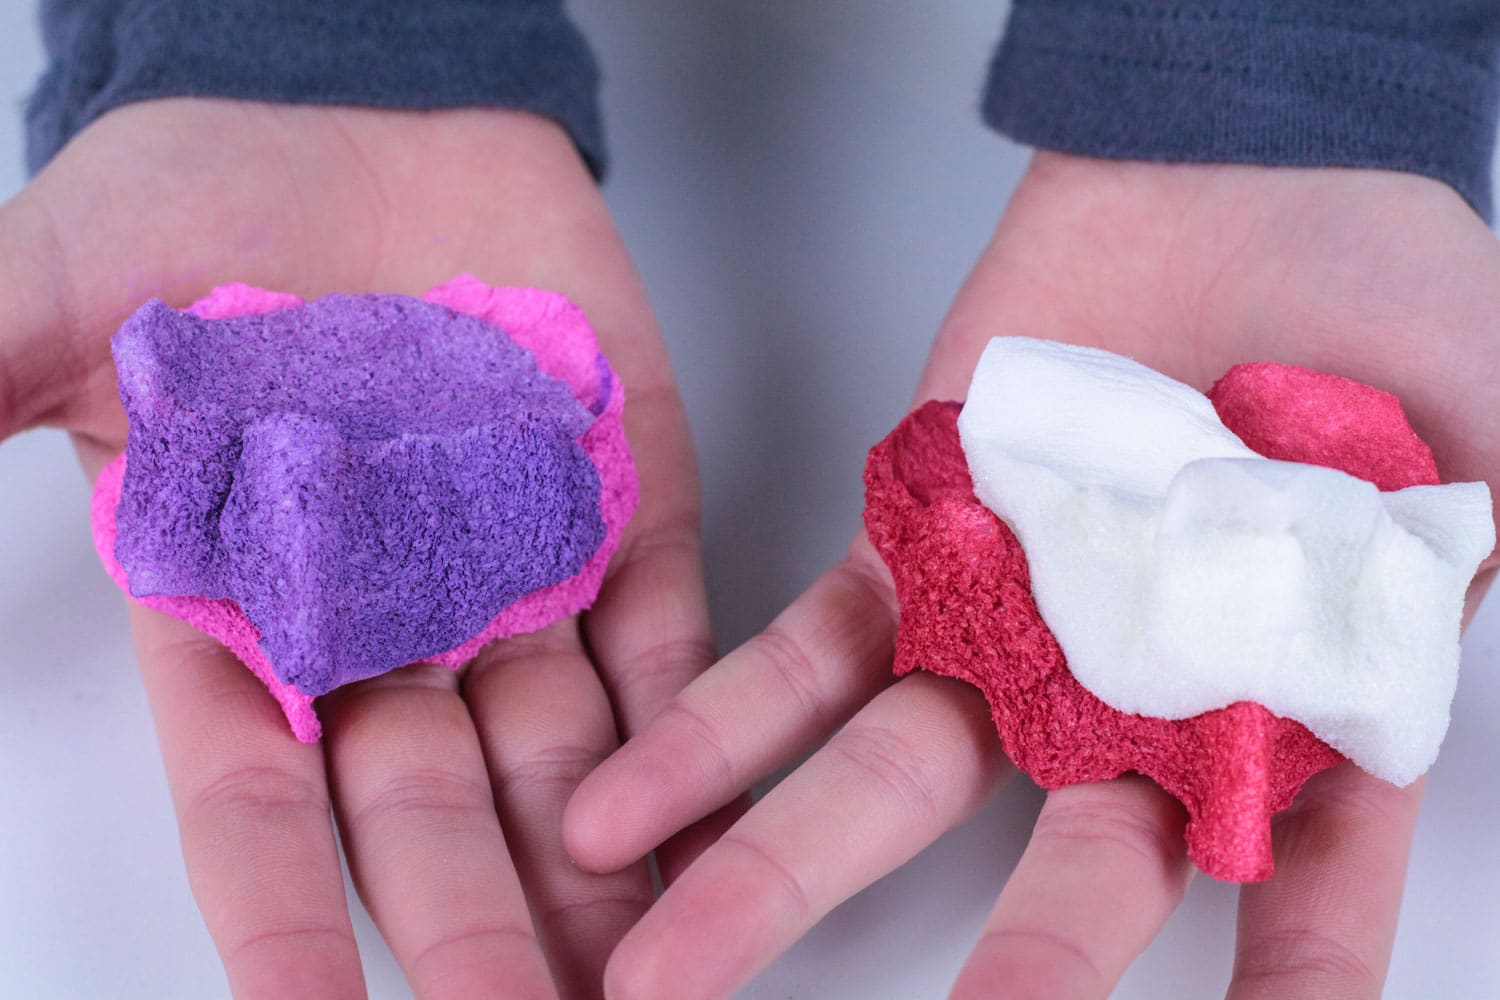 Looking for non-candy valentines? The DIY heart valentine squishy is the perfect valentine craft to make for your classmates! These DIY squishies will provide endless fun!